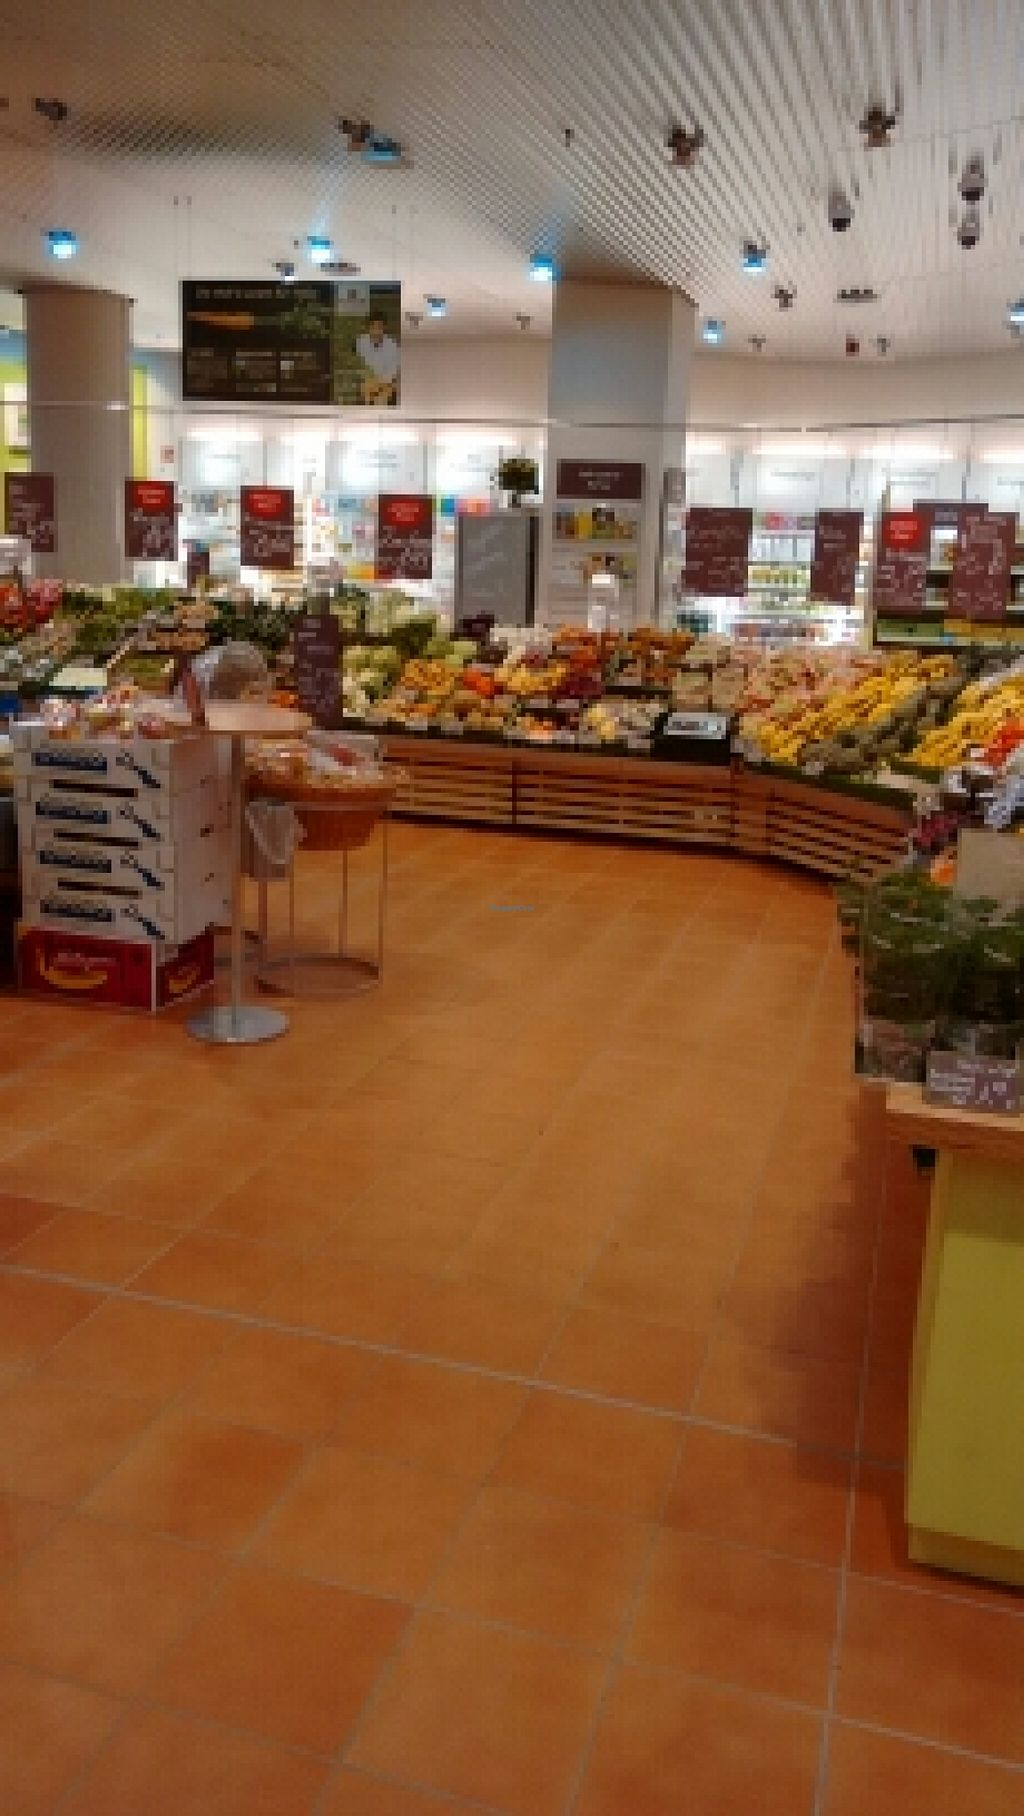 """Photo of Alnatura - Friedrichstrasse  by <a href=""""/members/profile/craigmc"""">craigmc</a> <br/>lots of organic fruit & veg <br/> March 29, 2016  - <a href='/contact/abuse/image/70760/141699'>Report</a>"""